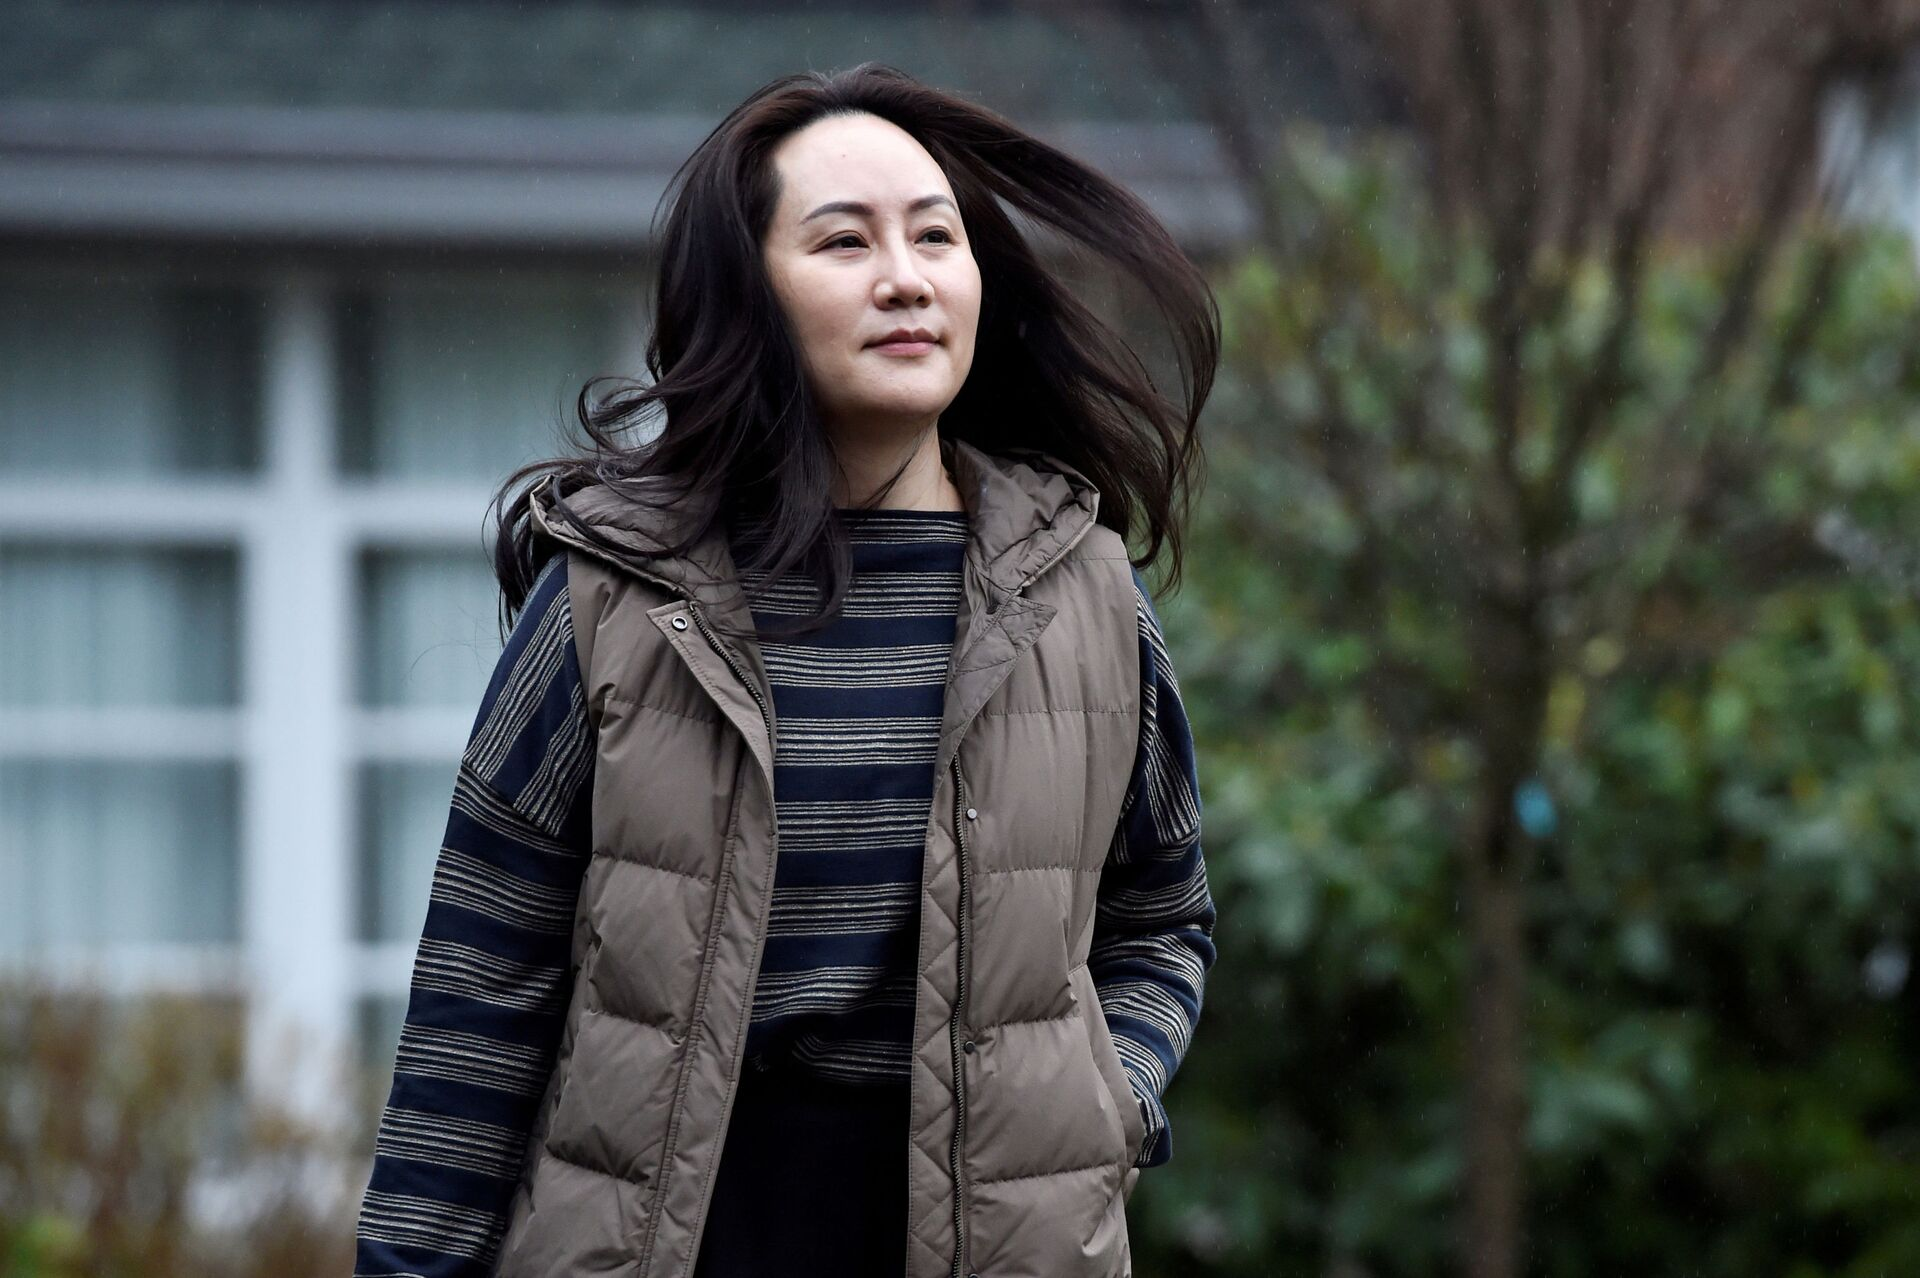 Huawei Technologies Chief Financial Officer Meng Wanzhou leaves her home to attend a court hearing in Vancouver, British Columbia, Canada December 7, 2020. - Sputnik International, 1920, 25.09.2021